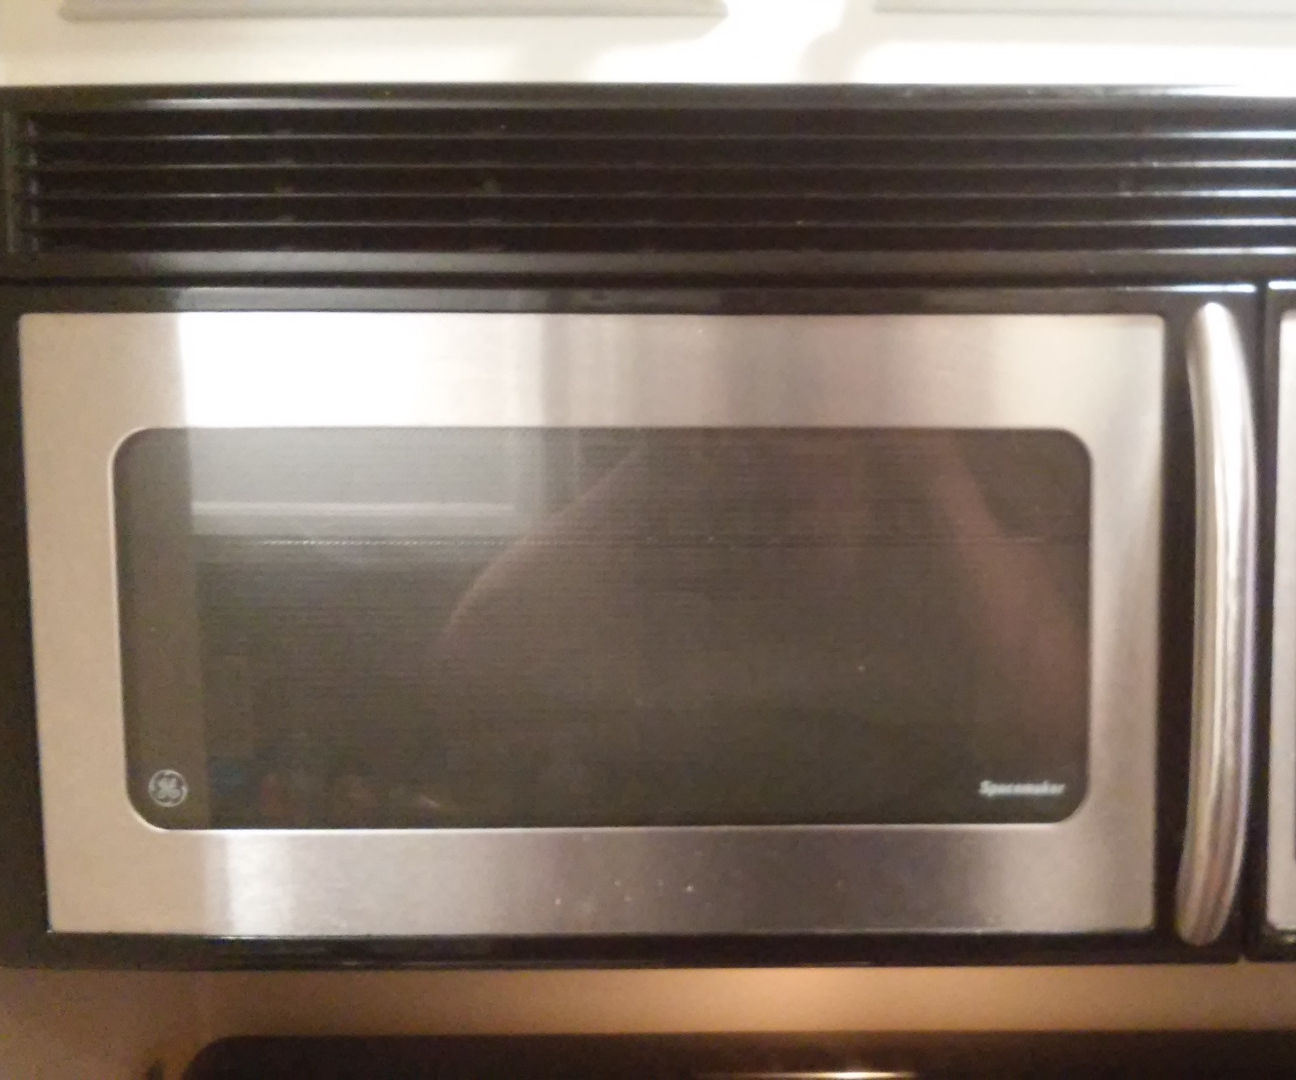 Easy Microwave Cleaning Hack